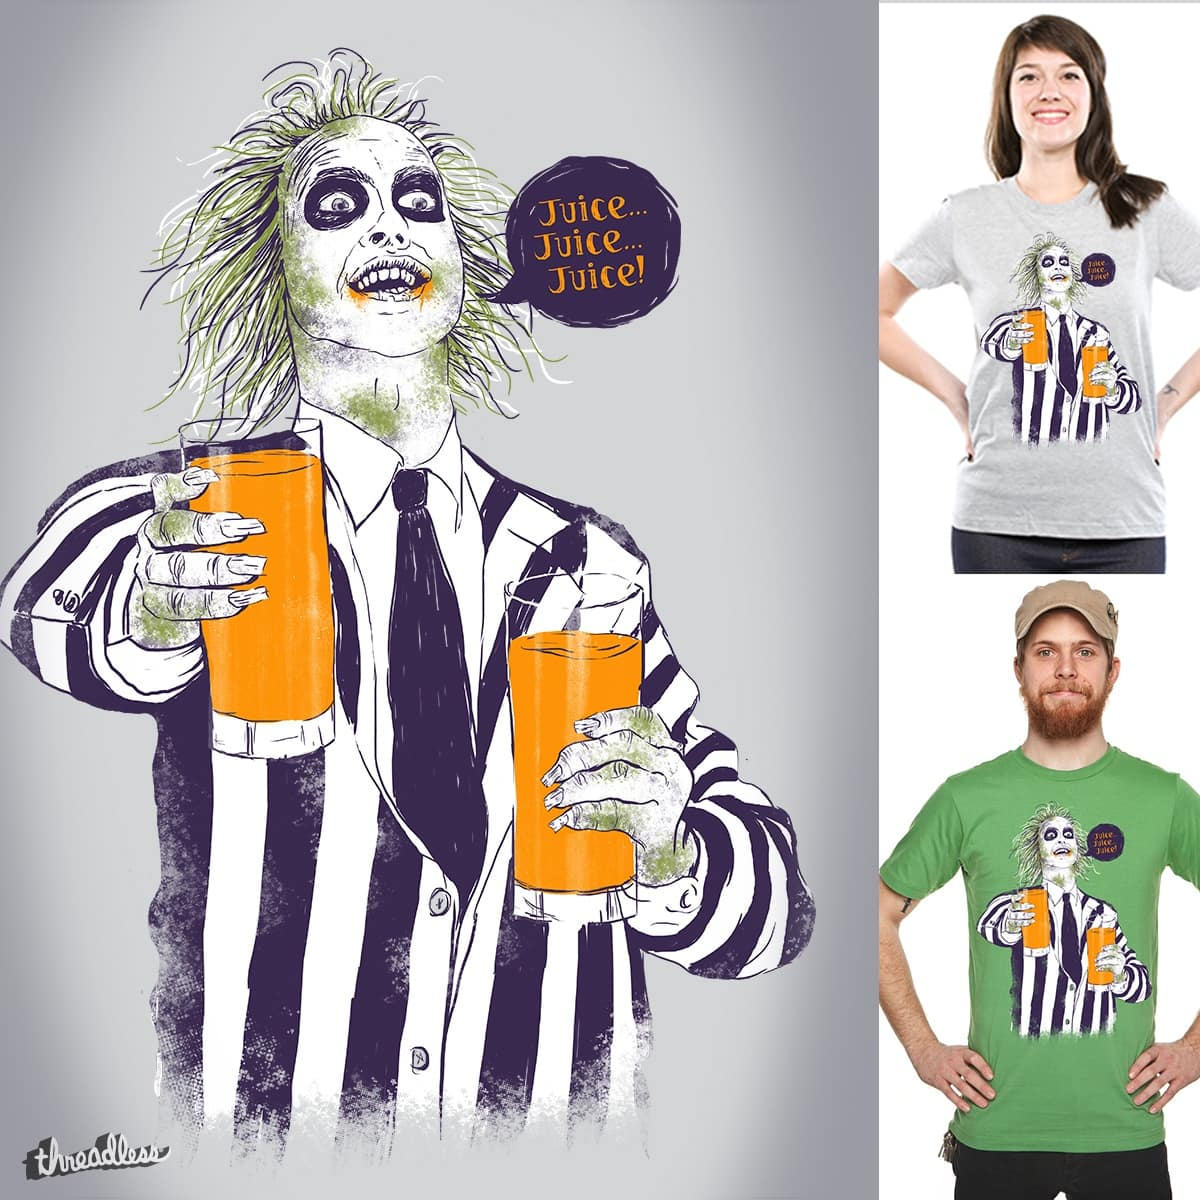 Juice...juice...juice! by silvestre.rodrigues.9 on Threadless